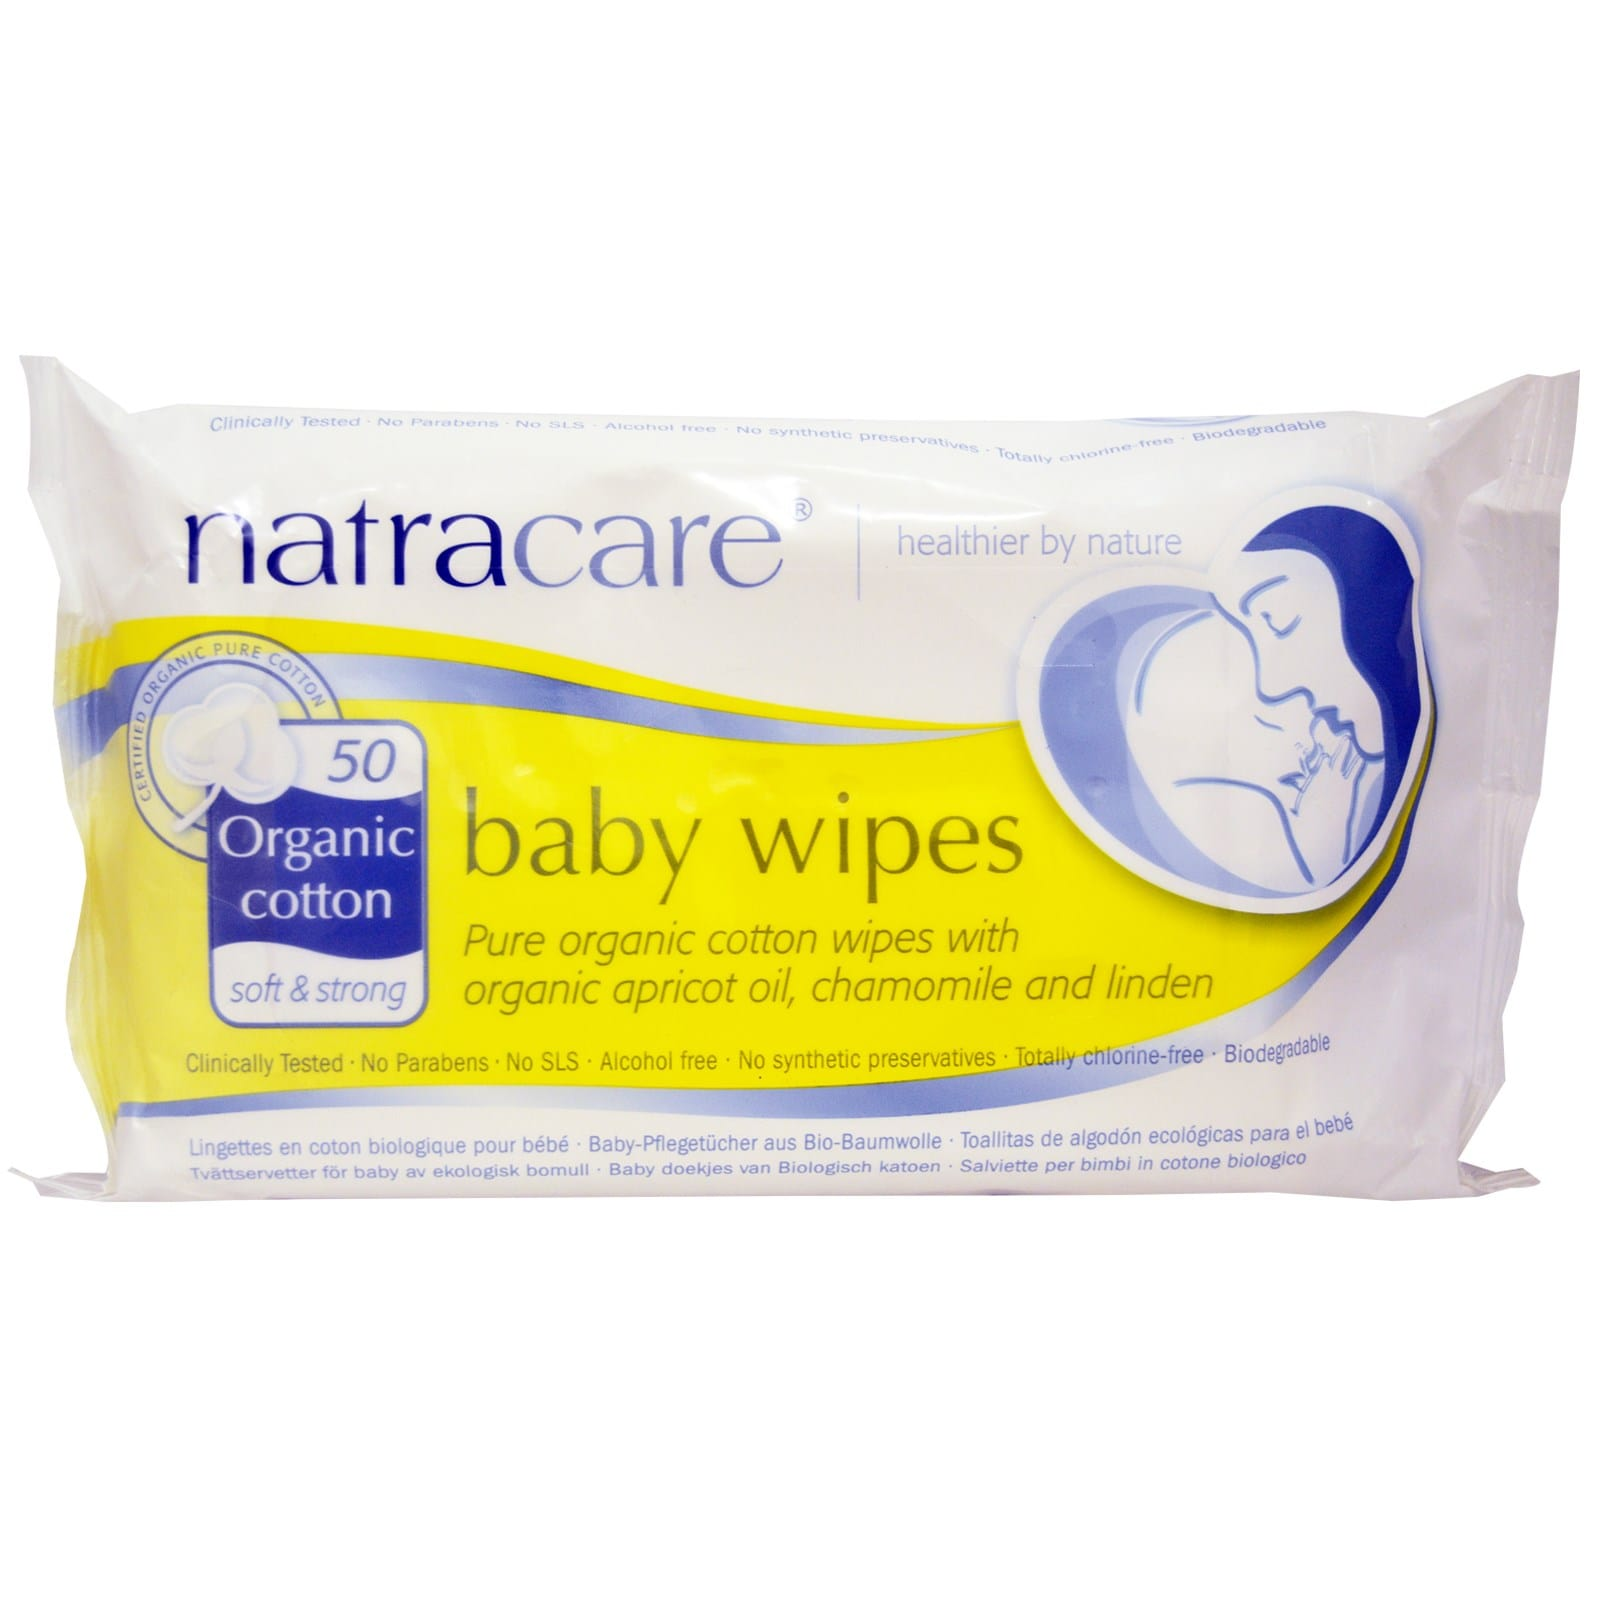 Natracare Organic Baby Wipes 50 pcs